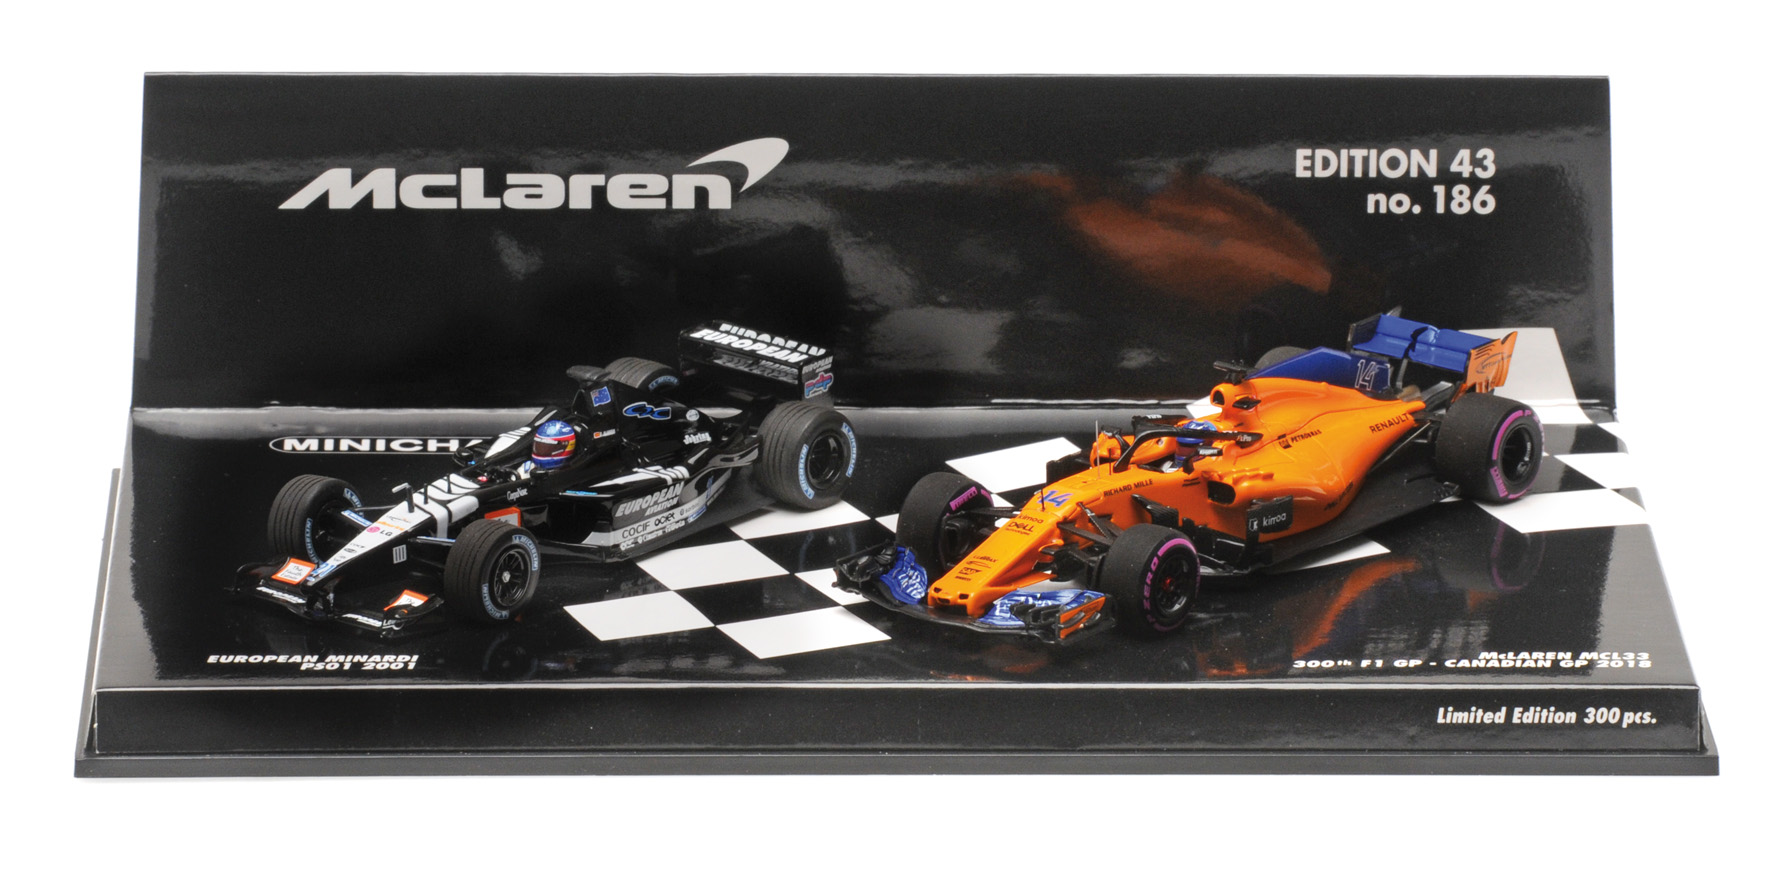 2-Car Set European Minardi PS01 2001 + McLaren Renault MCL33 Canada GP 2018 F. Alonso